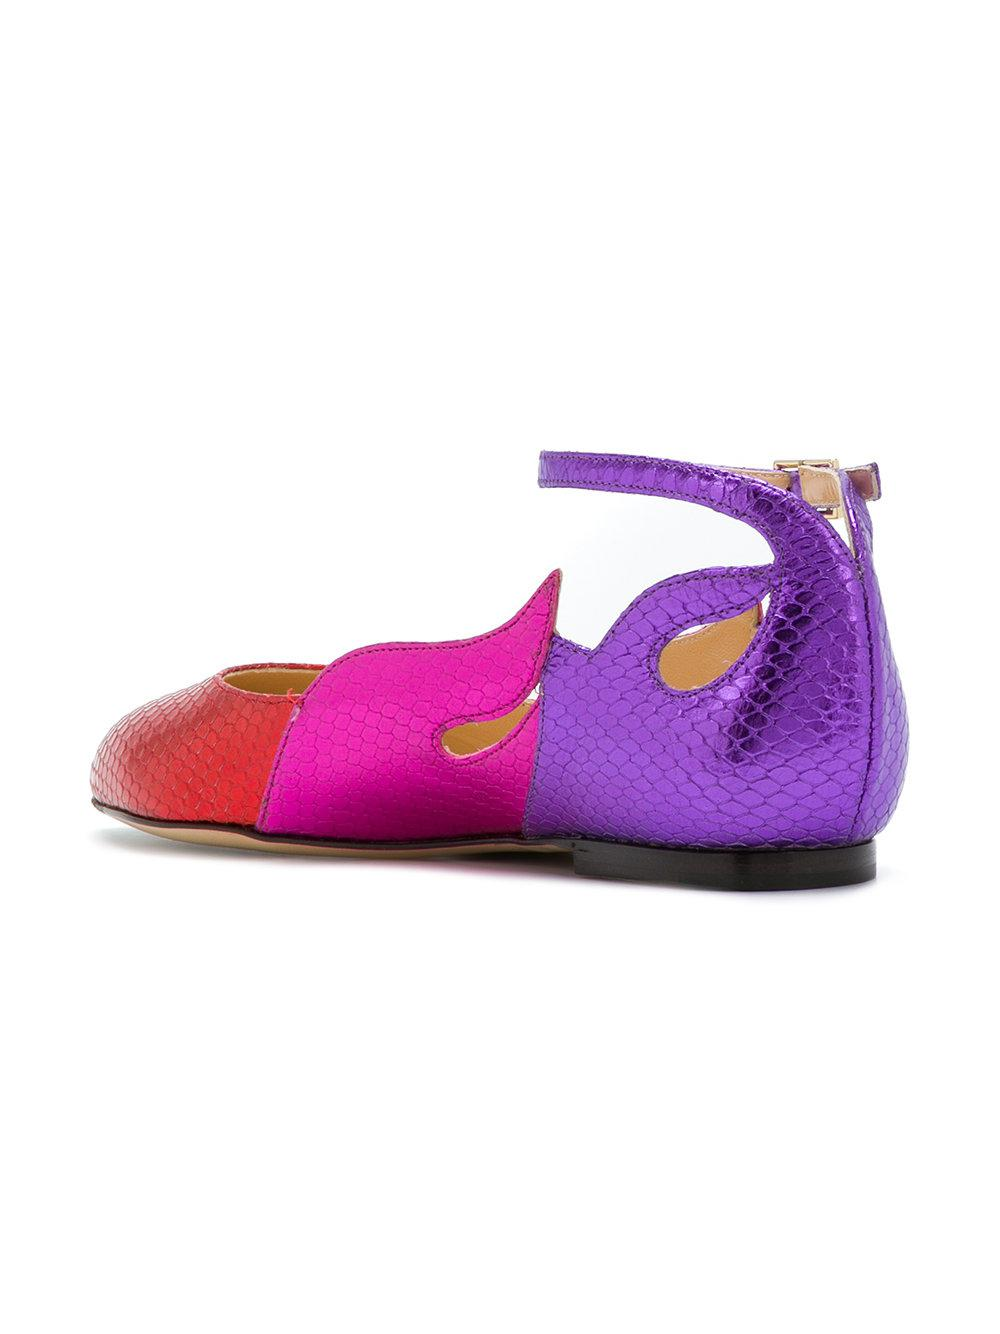 Charlotte Olympia Flamboyante Ballerines - Multicolor 0LNw4hrA